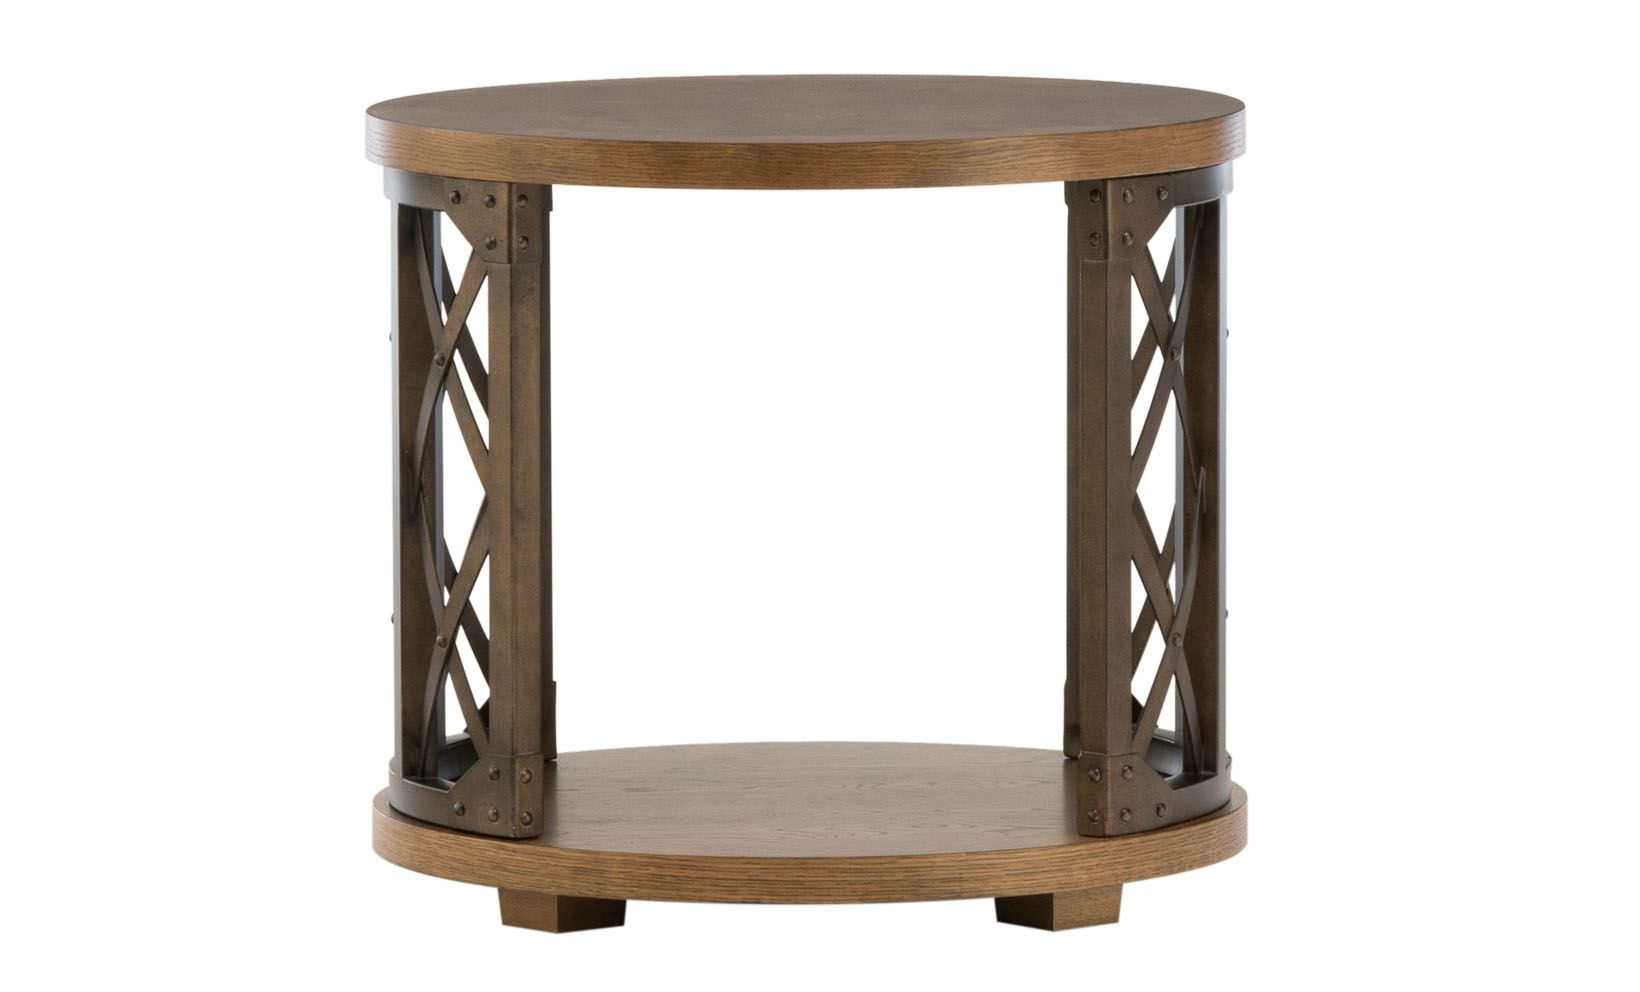 Metalworks Round End Table | Living room sofa, Open shelves and Rounding